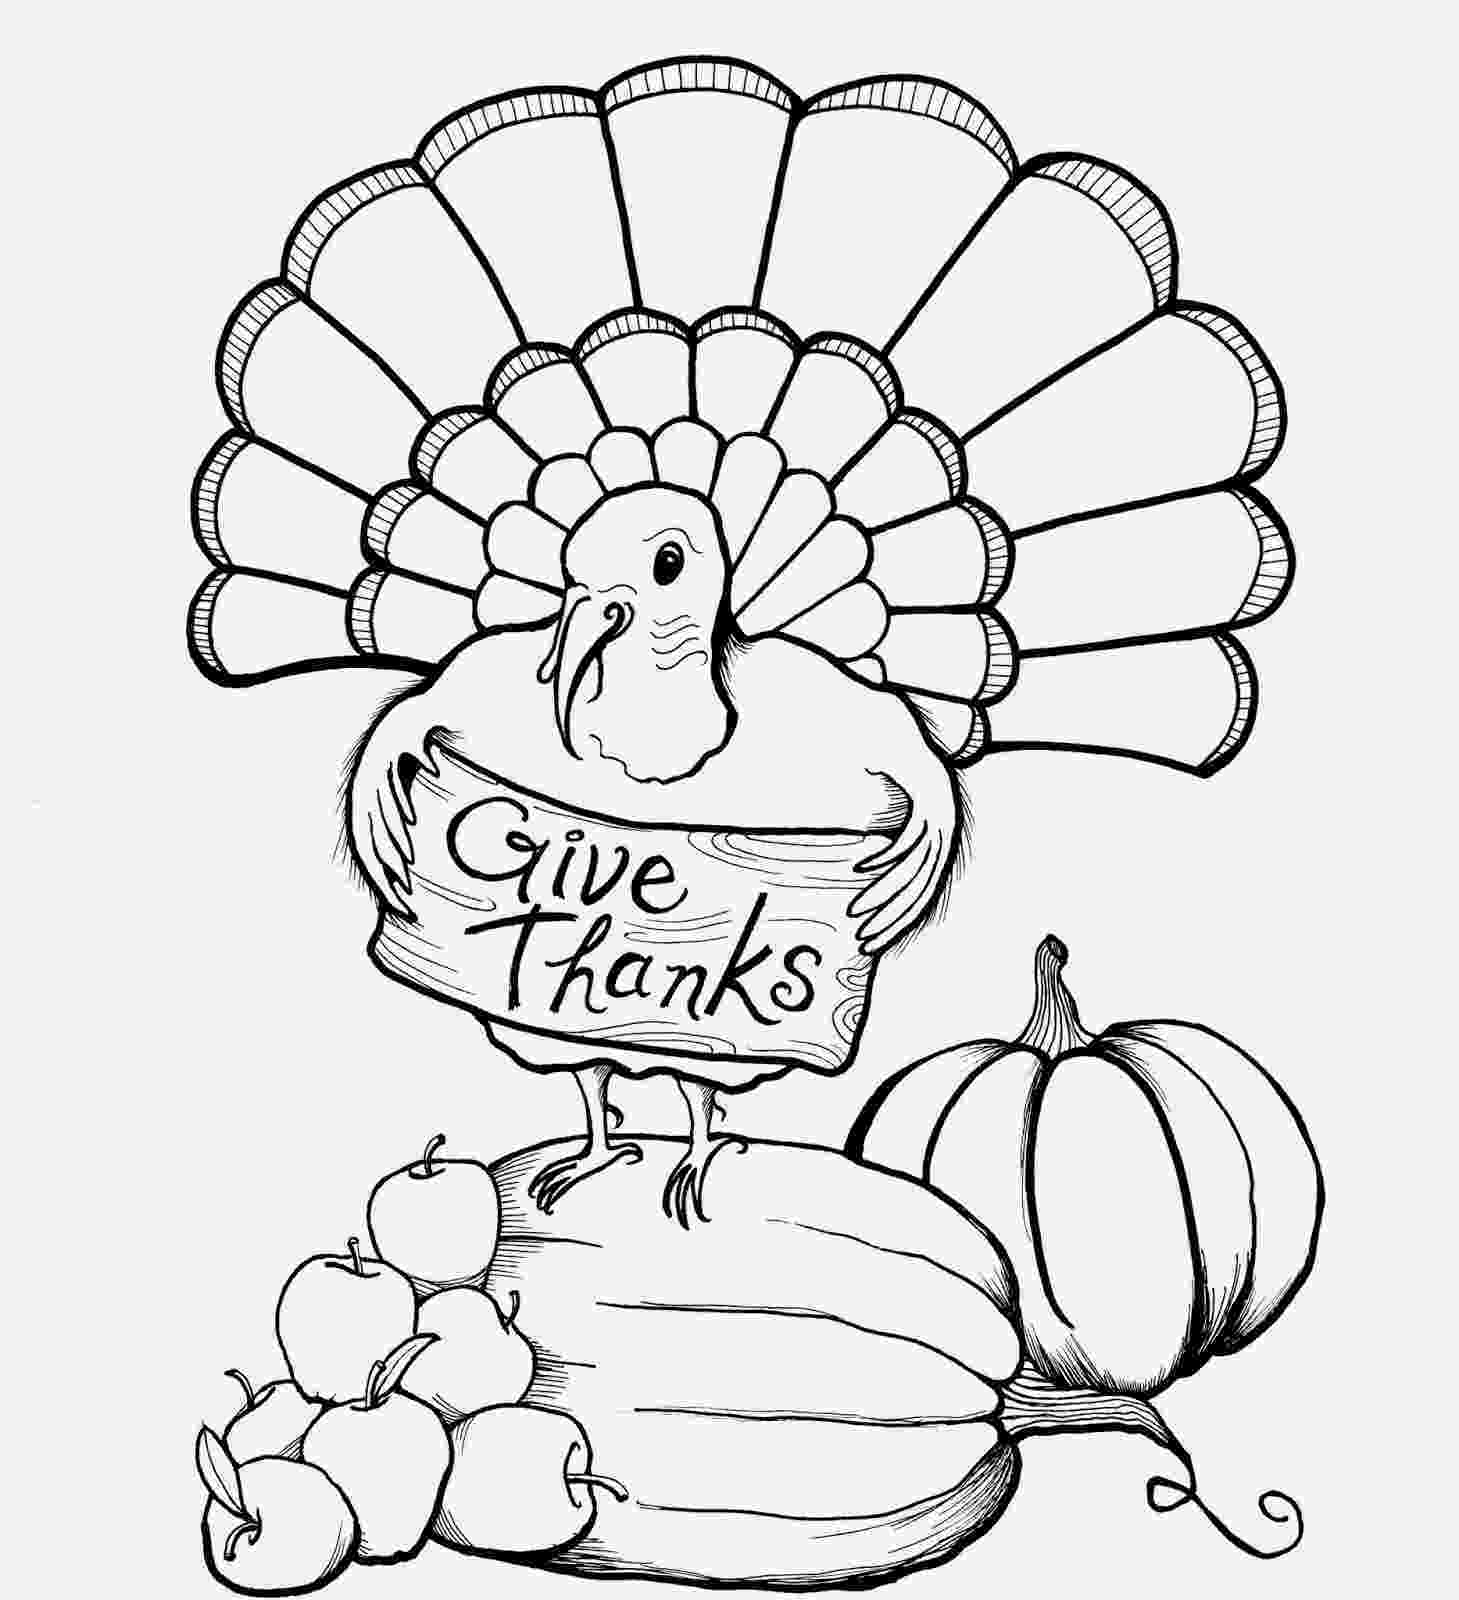 thanksgiving turkey coloring page thanksgiving turkey coloring pages to print for kids page turkey thanksgiving coloring